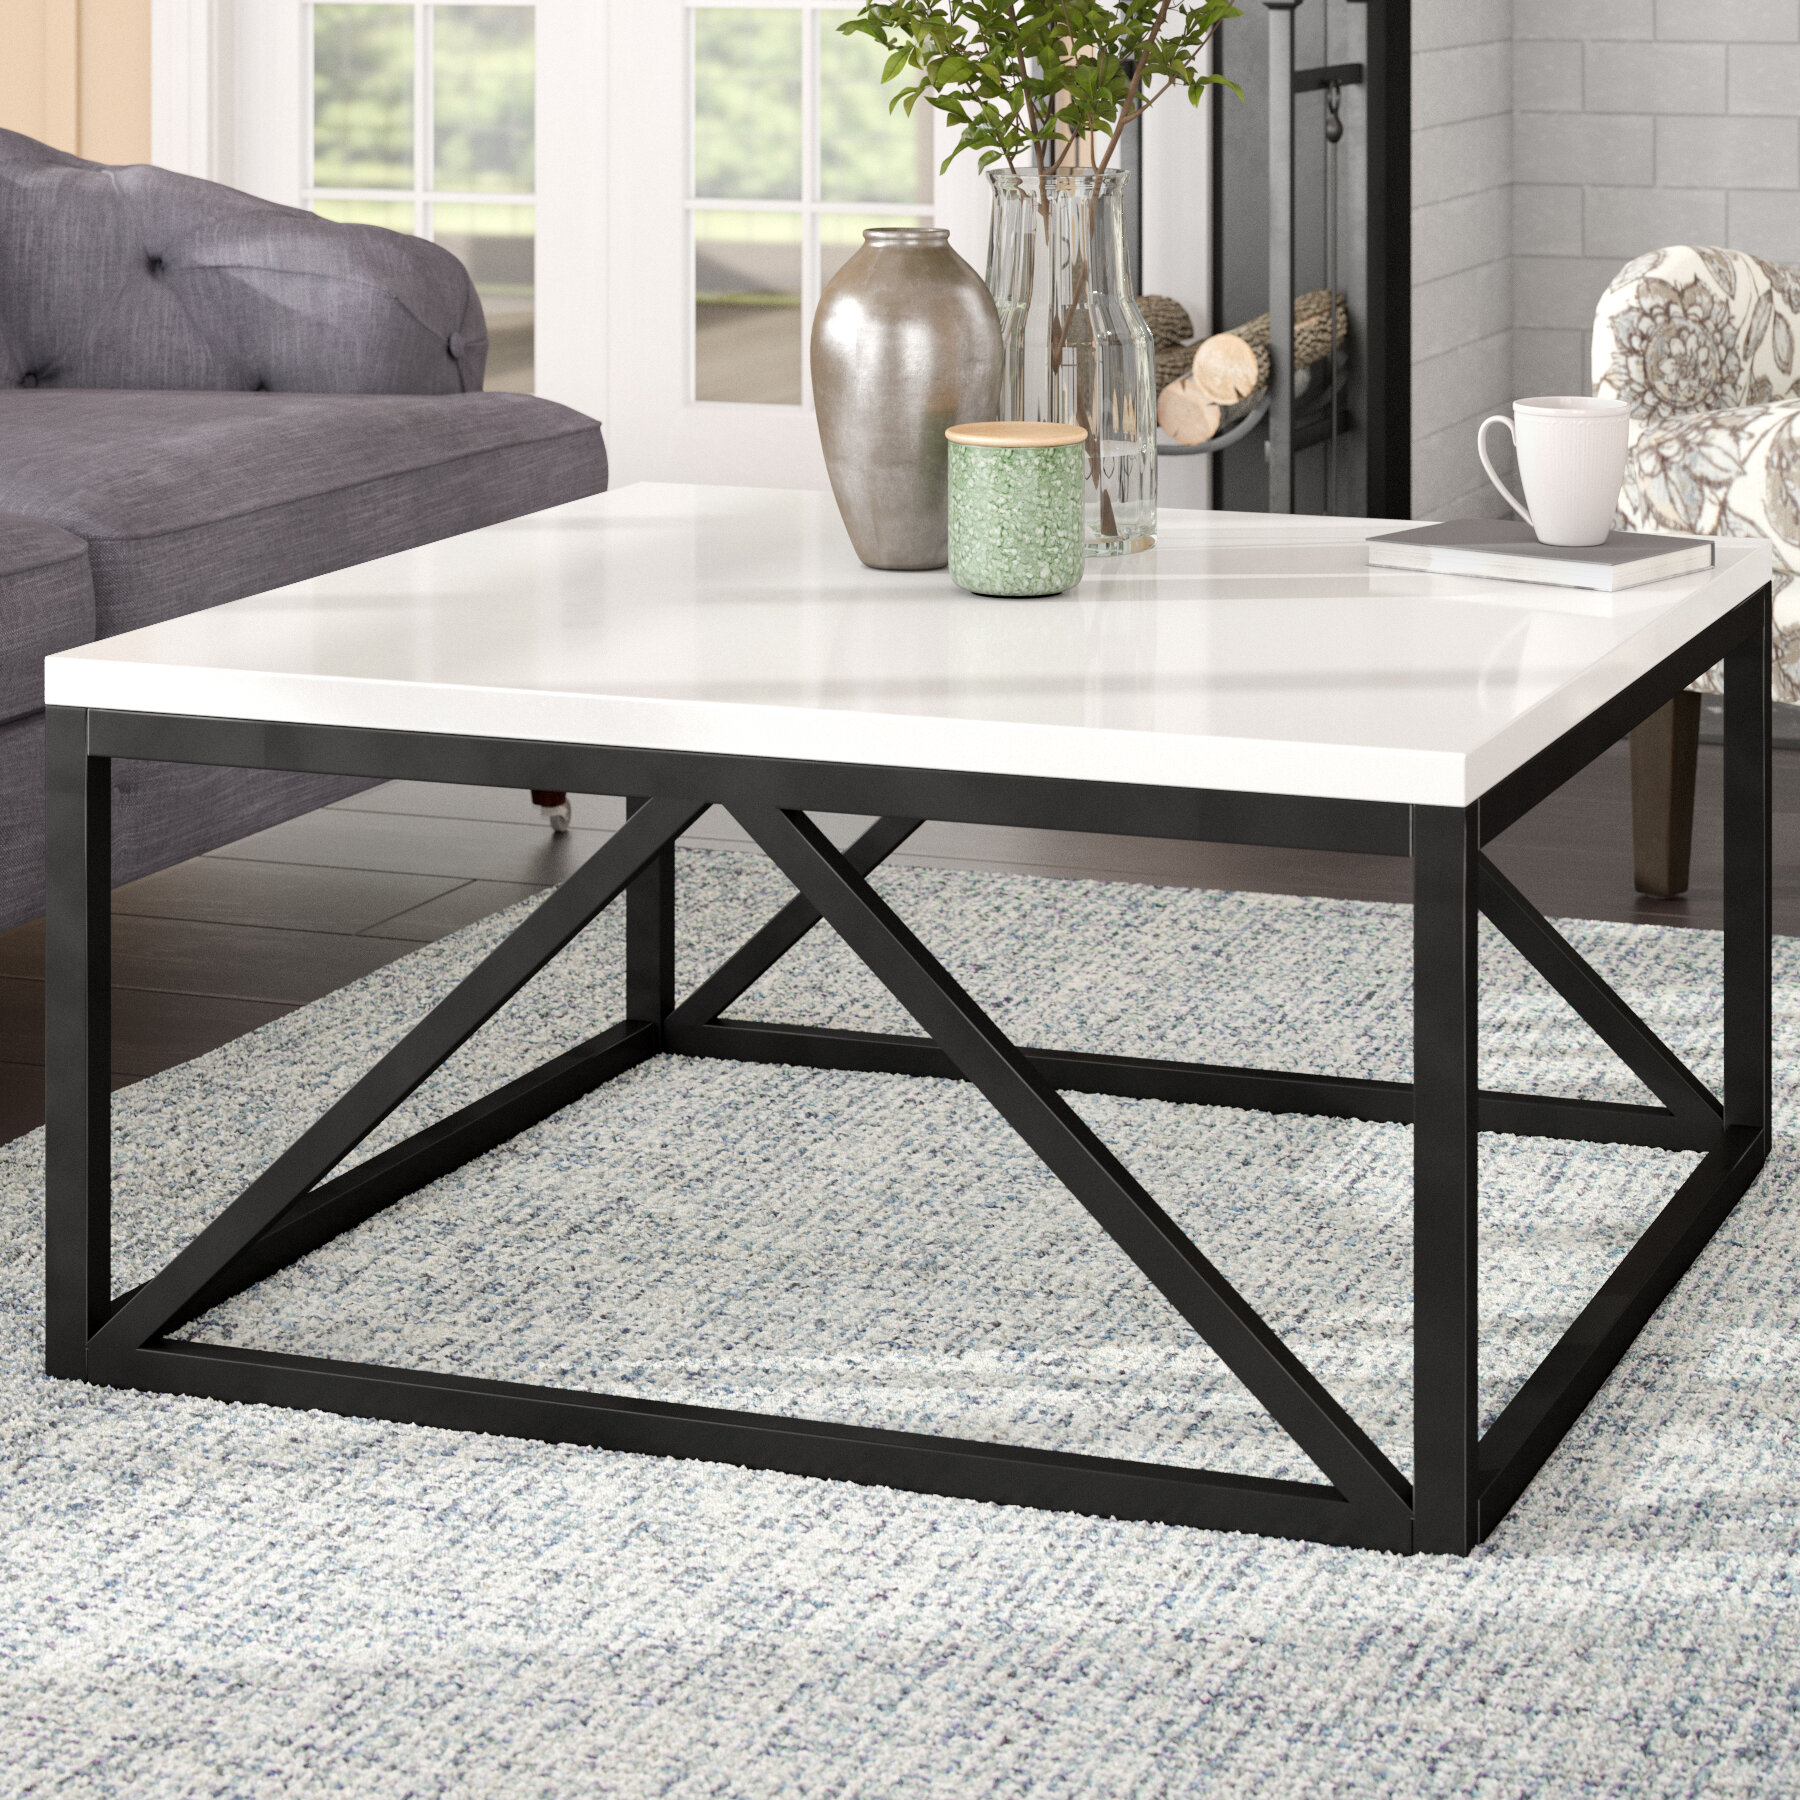 Gracie oaks dunstan two toned coffee table reviews wayfair ca